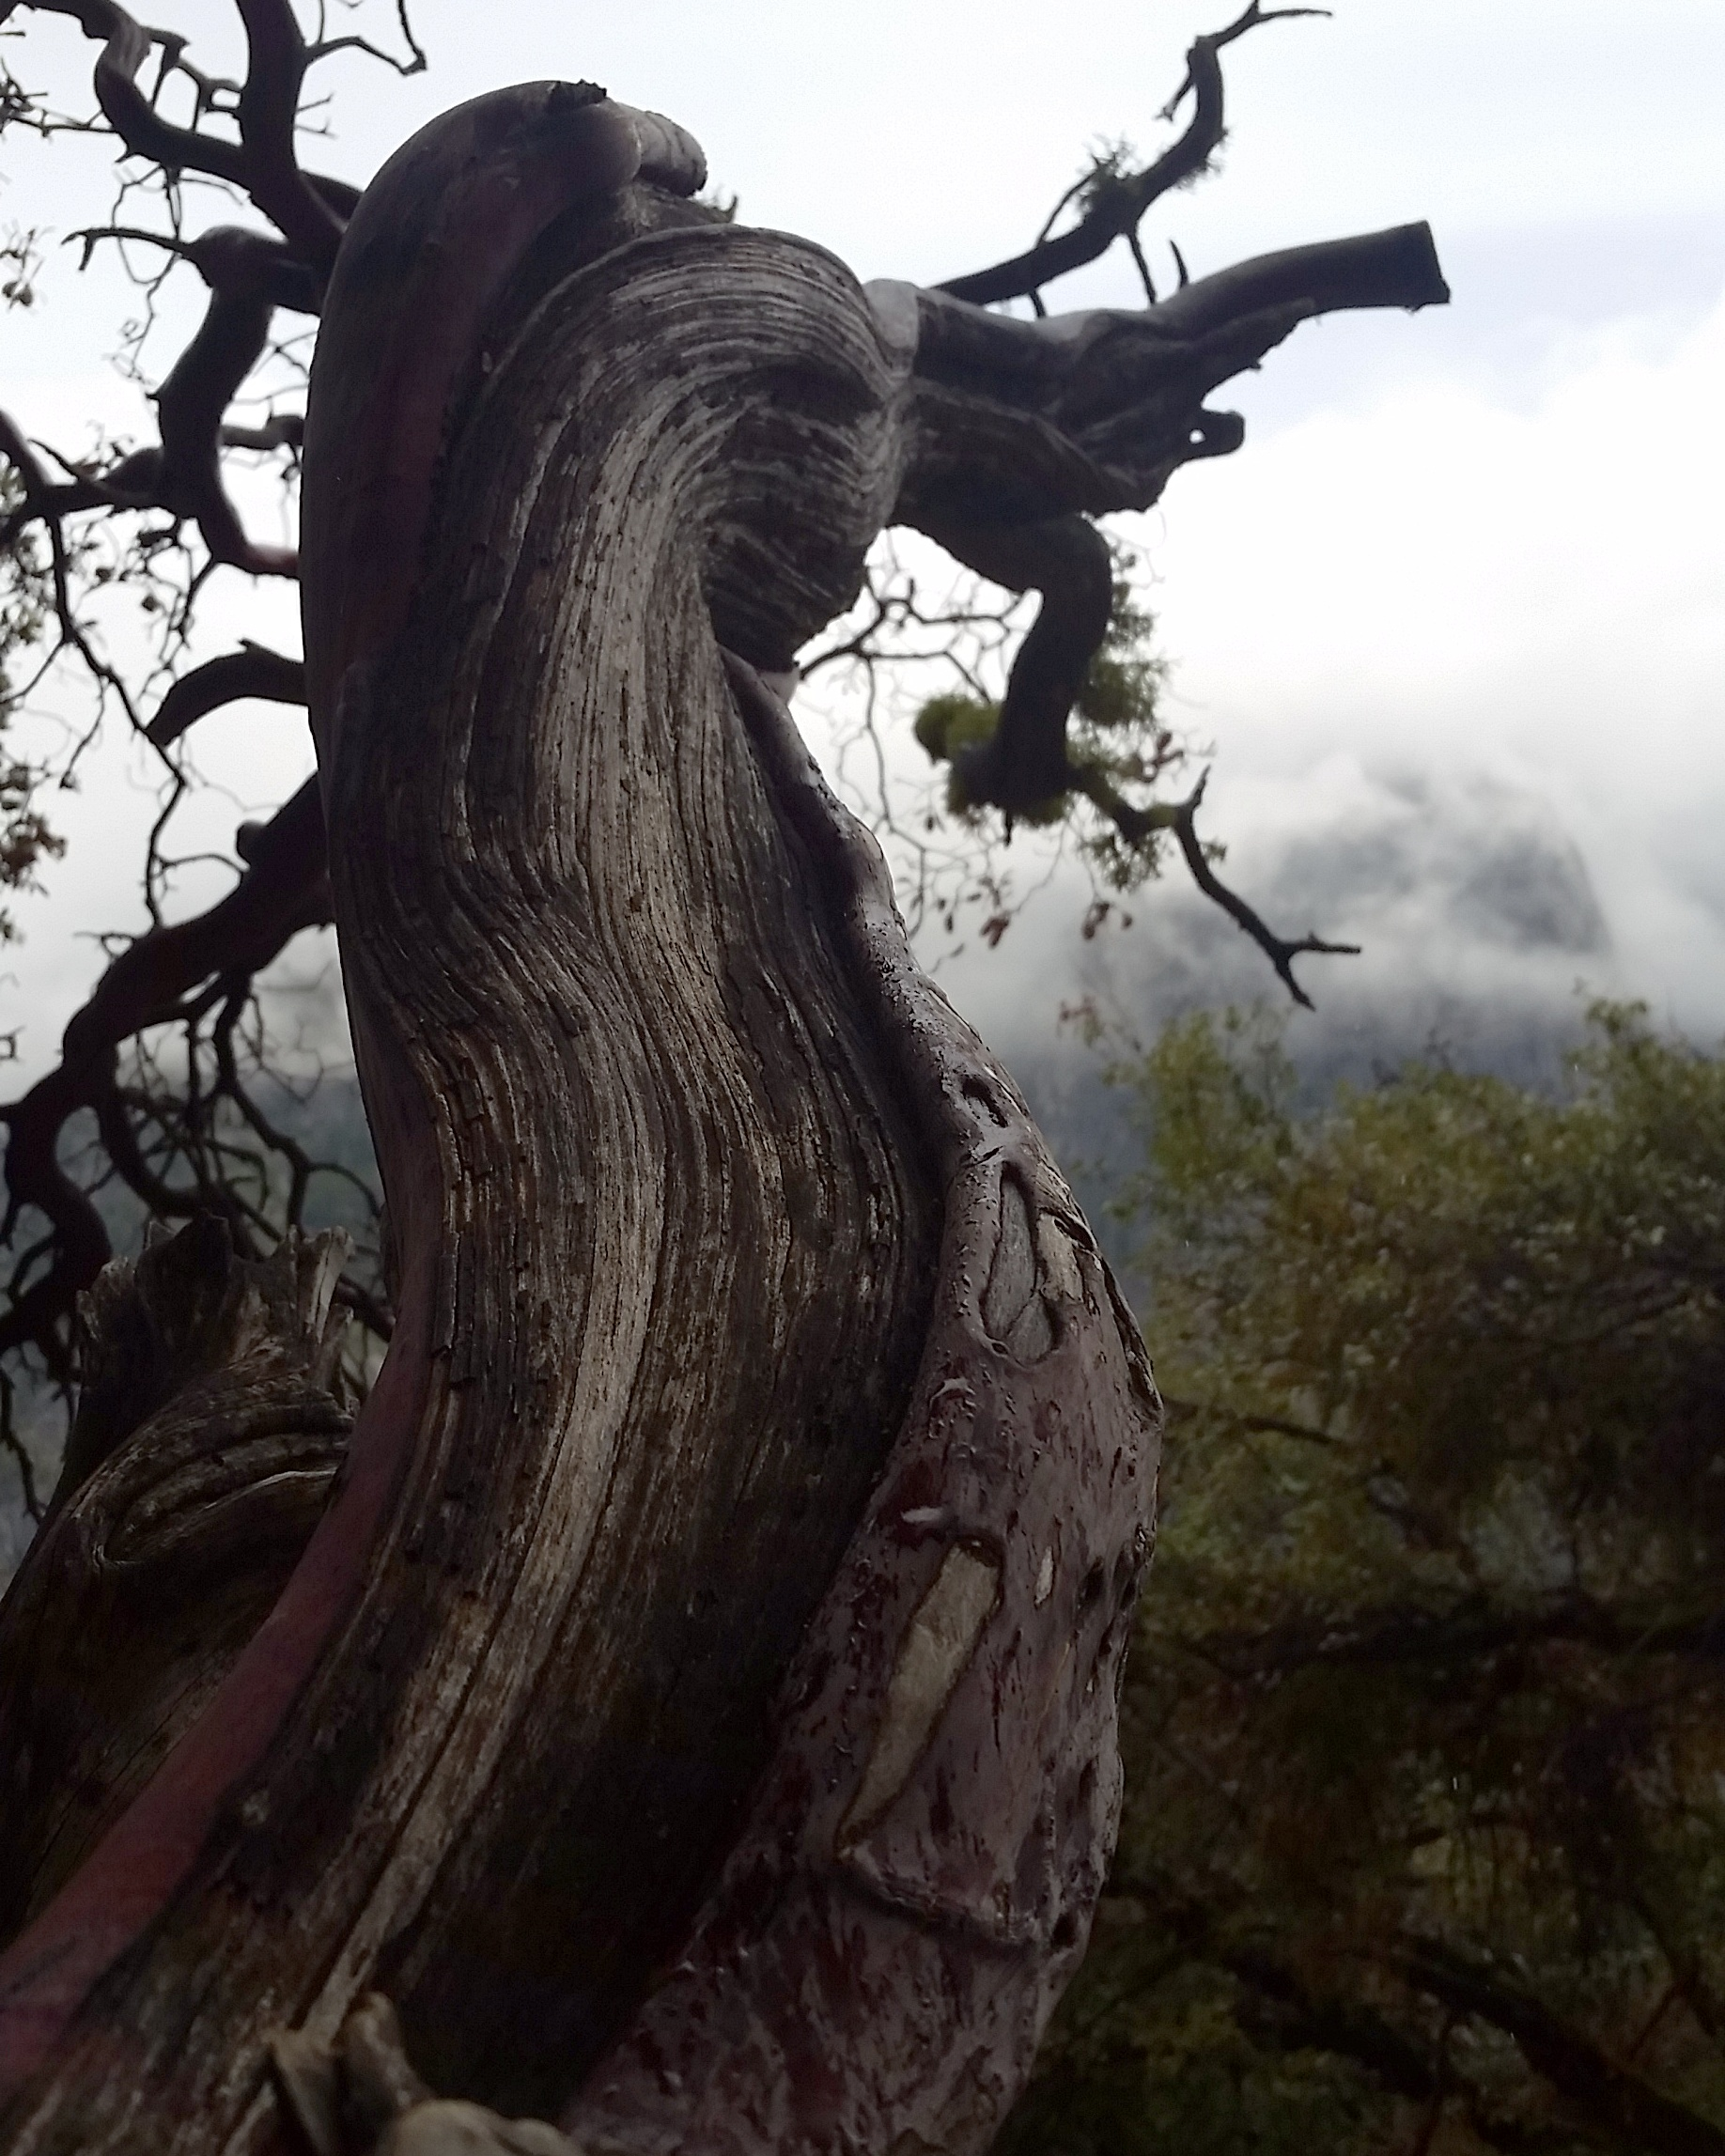 A manzanita tree in Yosemite. Living tissue and dead intertwined and piercing the mists.